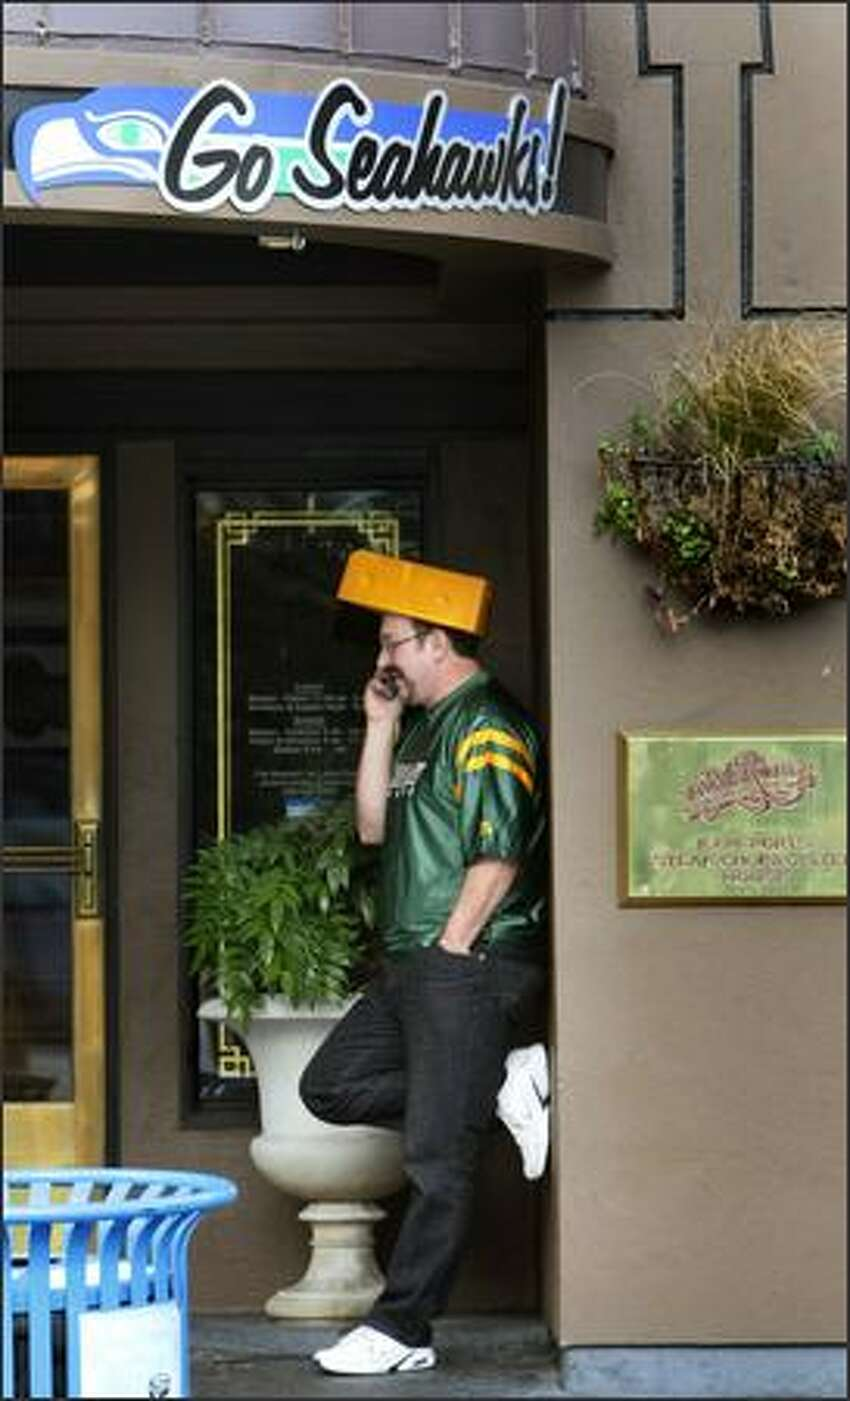 Green Bay fan Steve Nyberg talks on his phone at F.X. McRory's Whiskey Bar near Qwest Field in Seattle after his team pulled ahead of the Seahawks.